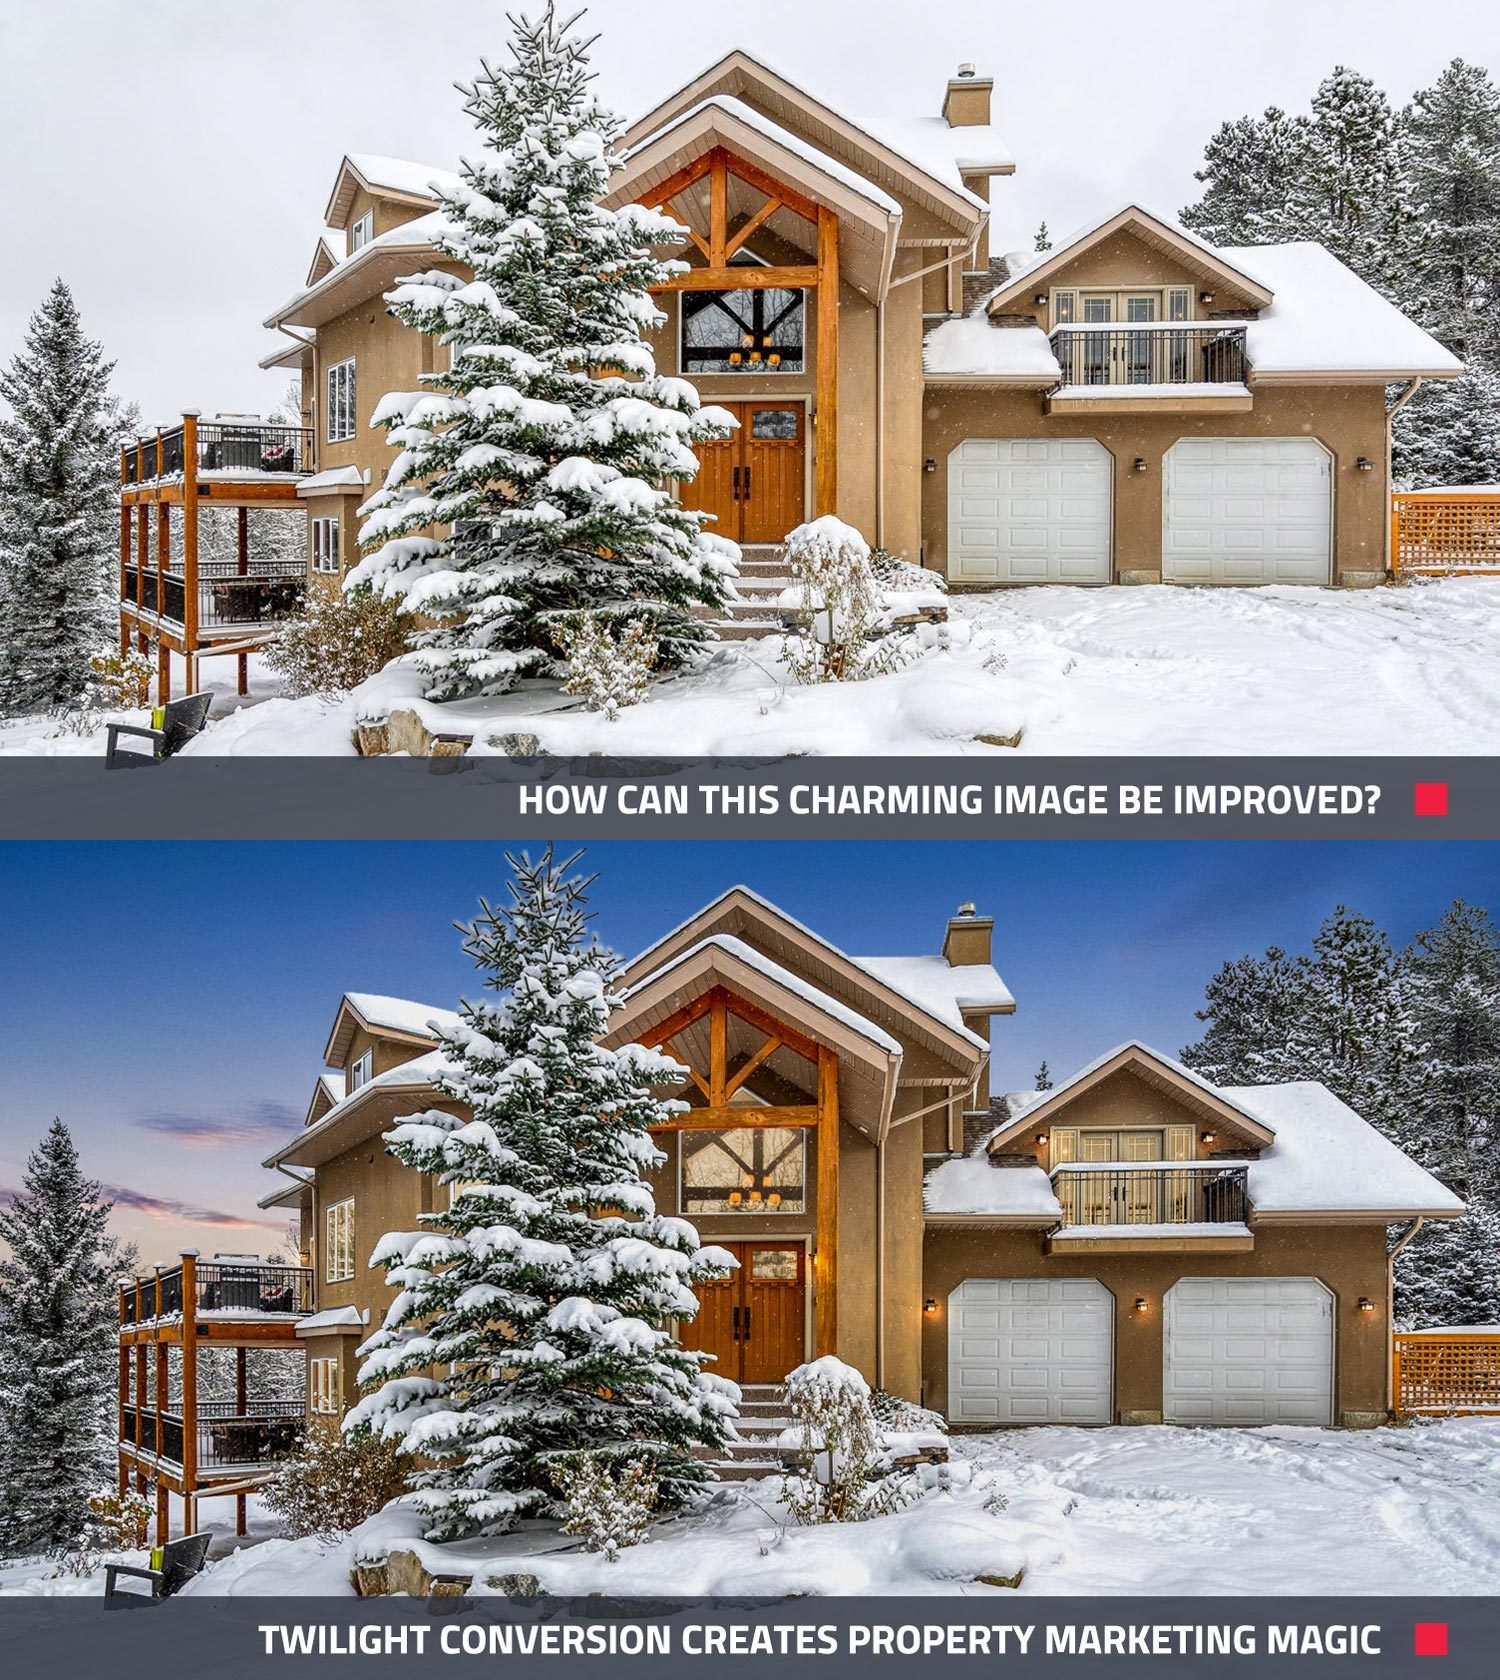 before and after of enhancing an image to make it more appealing online for real estate